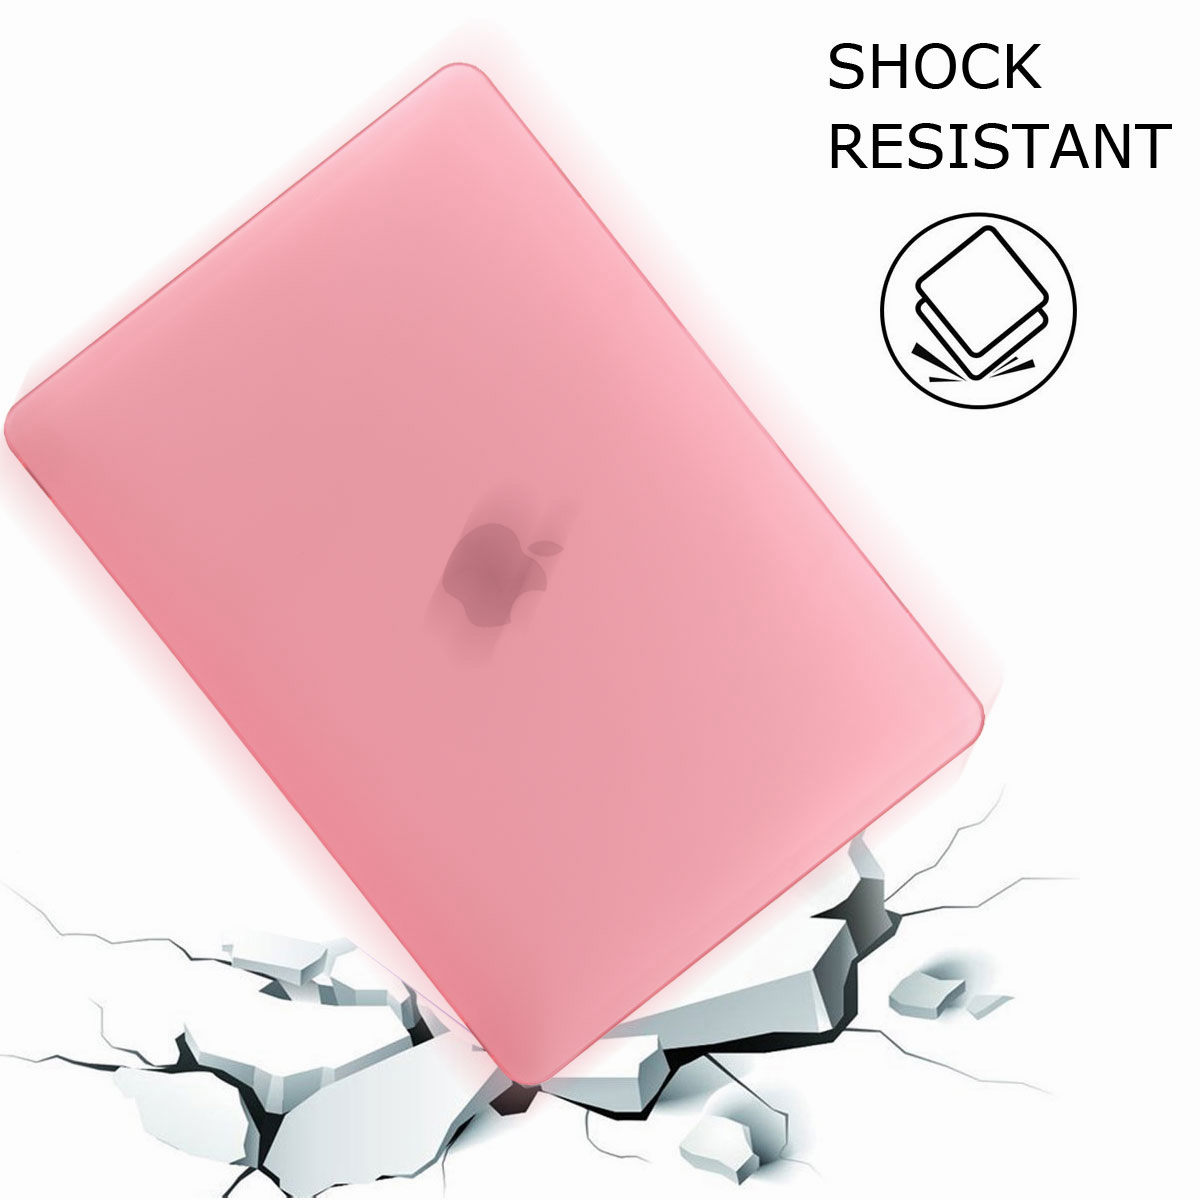 Shockproof-Rubberized-Matte-Hard-Case-Cover-For-Macbook-13-034-15-034-Inch-A1286-A1278 thumbnail 42